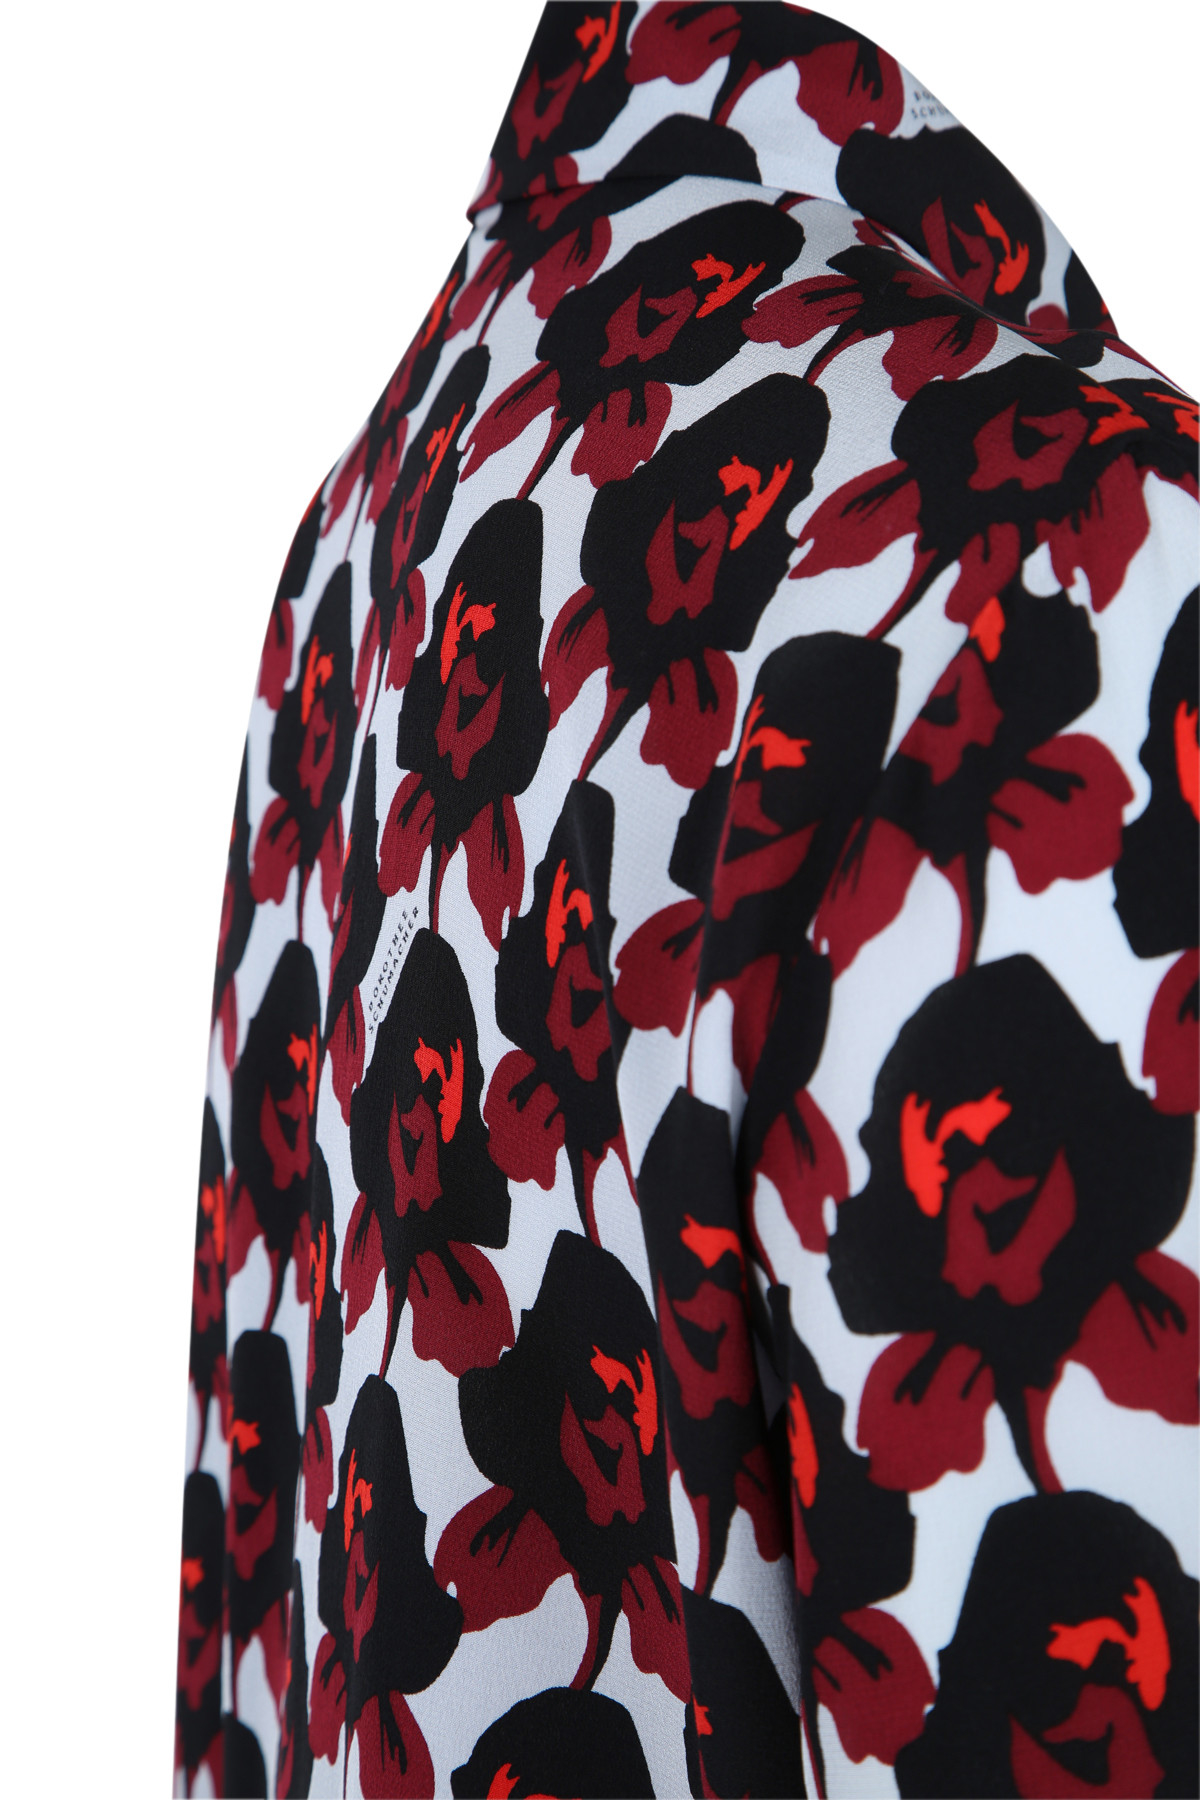 dorothee schumacher radical flower blouse 1 1 in red raspberry red flower lyst. Black Bedroom Furniture Sets. Home Design Ideas